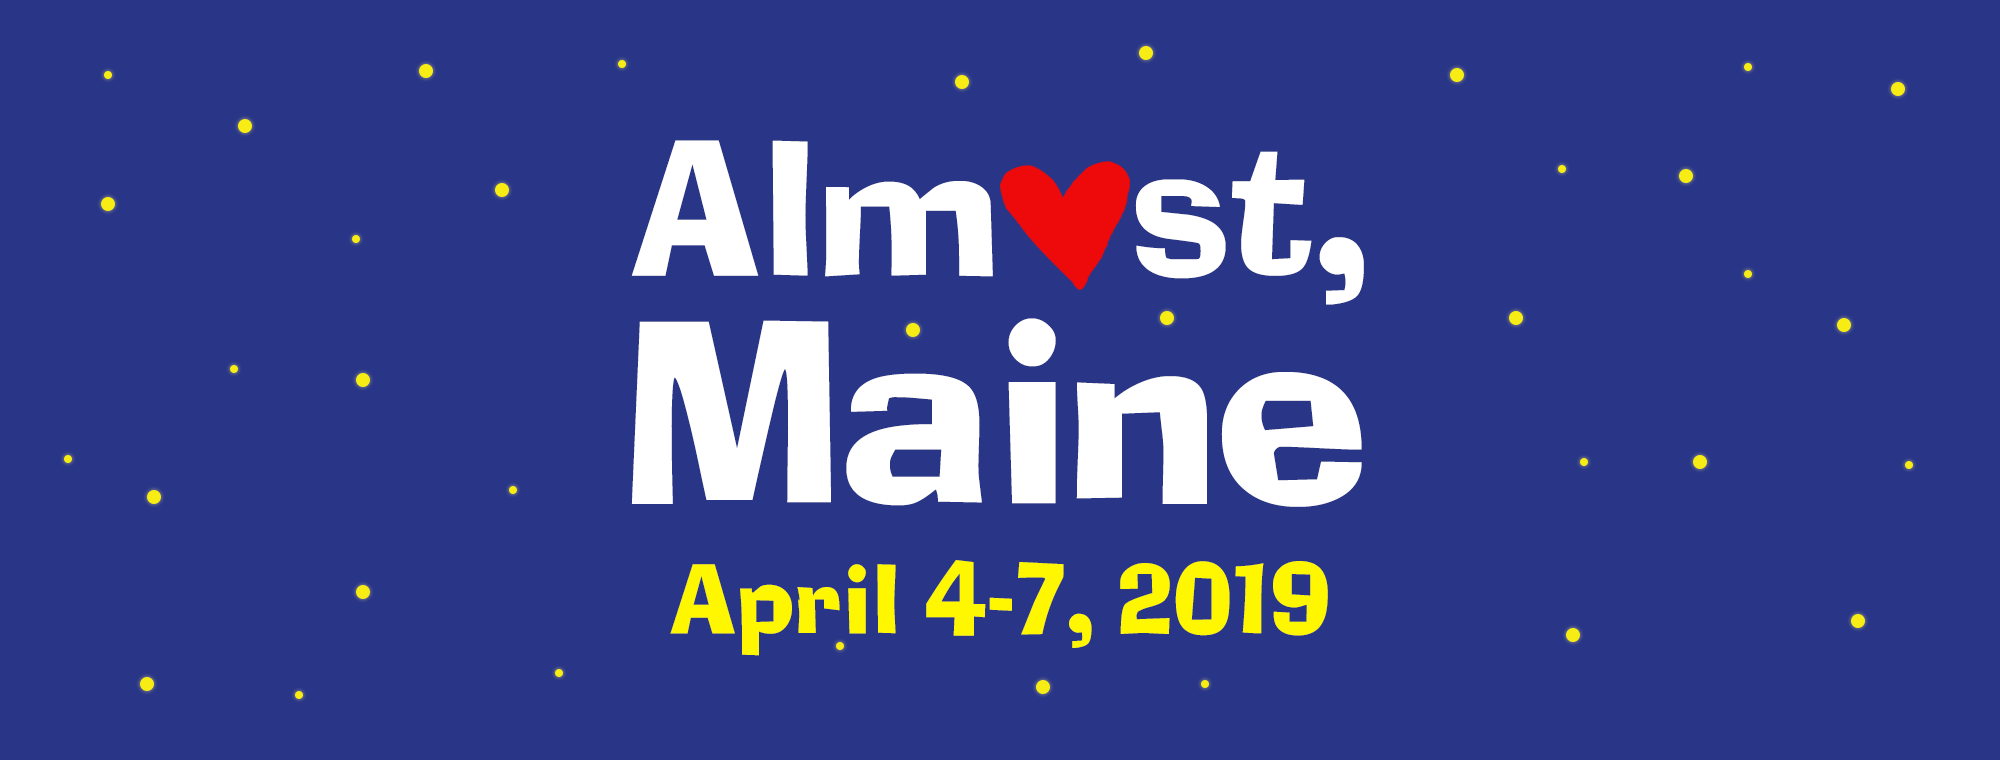 Almost Maine GLT FB Banner.png